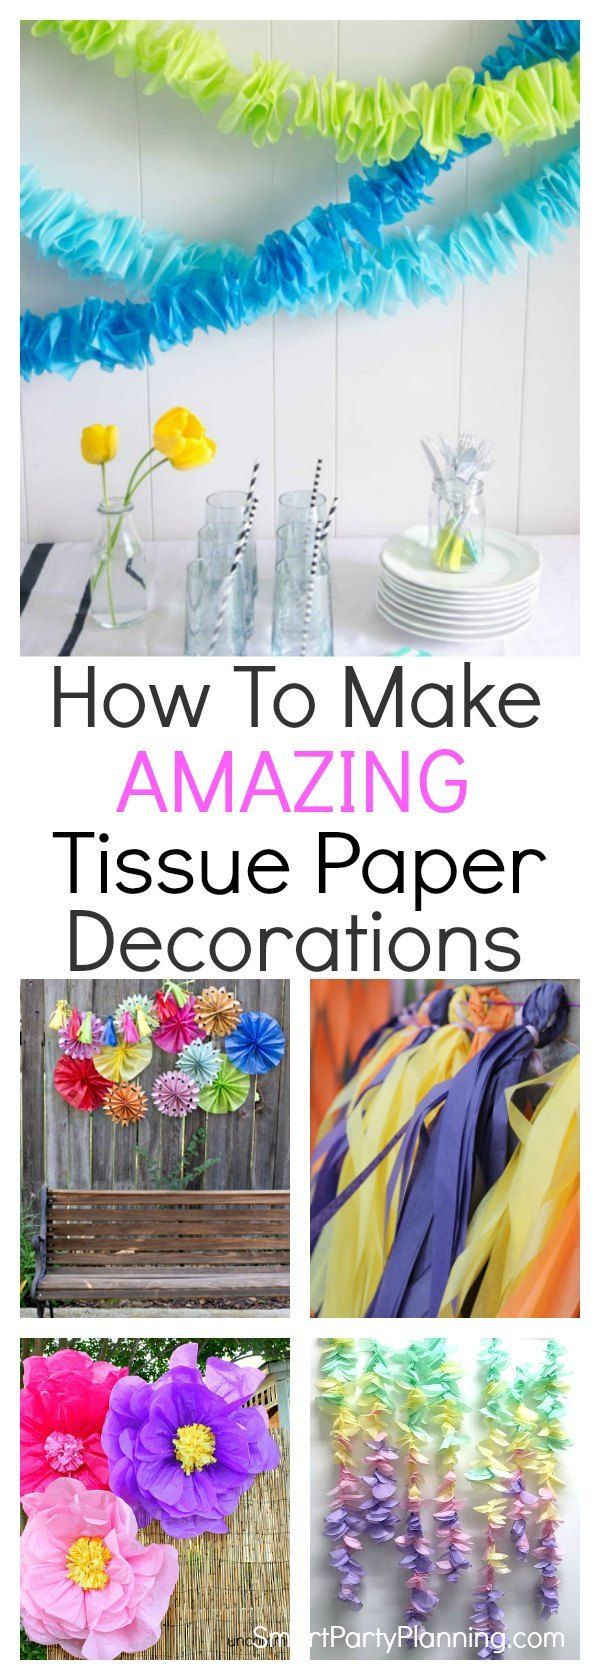 Learn how to make 11 amazing tissue paper decorations. Fun crafts to try at my next craft night or crafting with the kids.